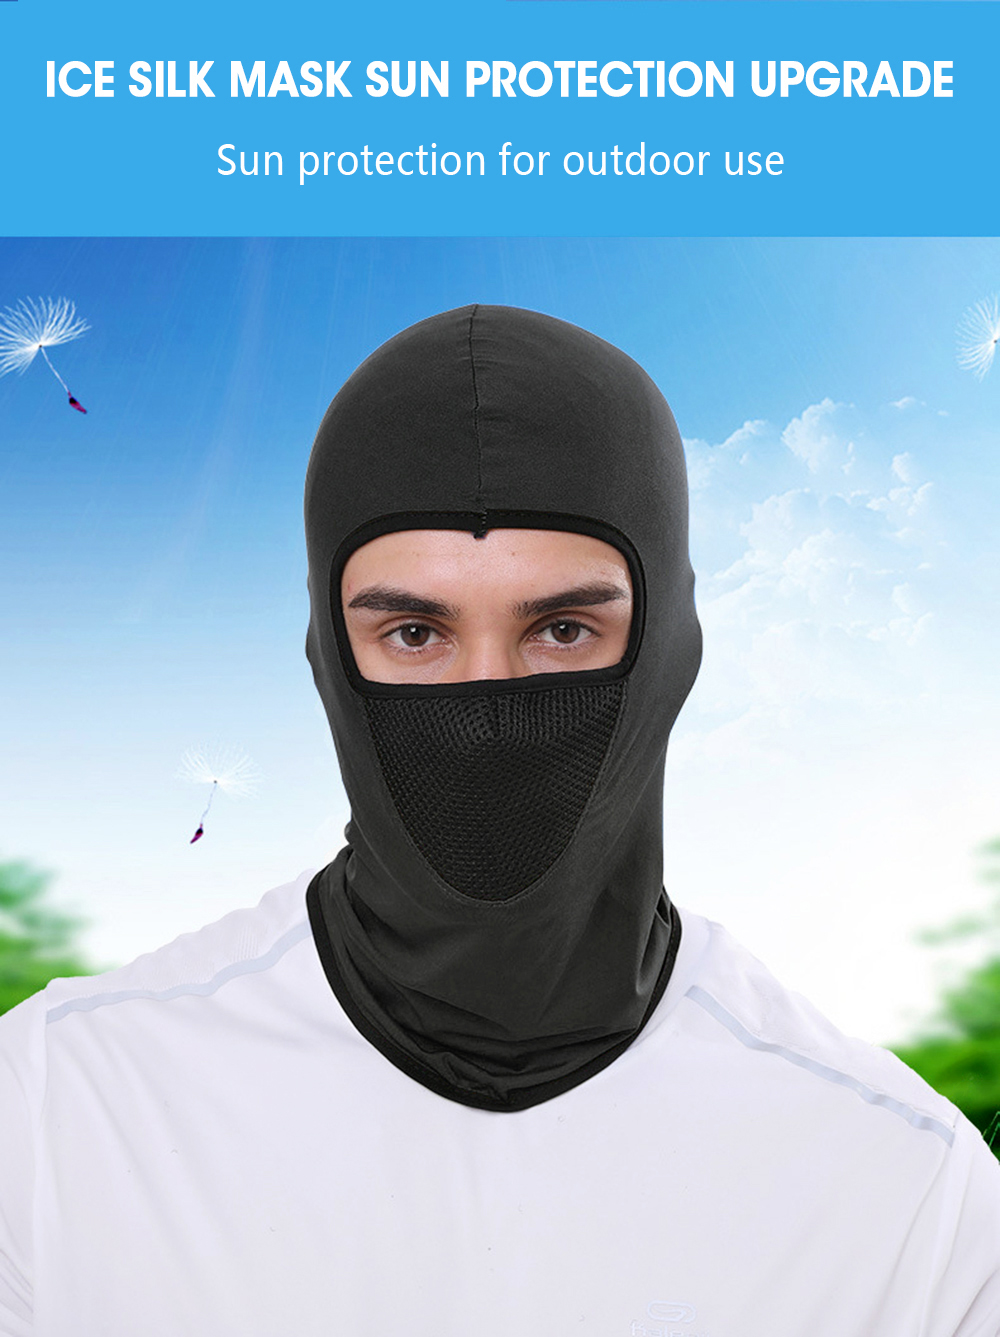 H09246e2b6aa54271a5435bb73a92fcd7I Zacro Outdoor Cycling Hooded Training Mask for Men Women Summer Sport Facemask Windproof Sunscreen Dustproof Bicycle Ski Mask